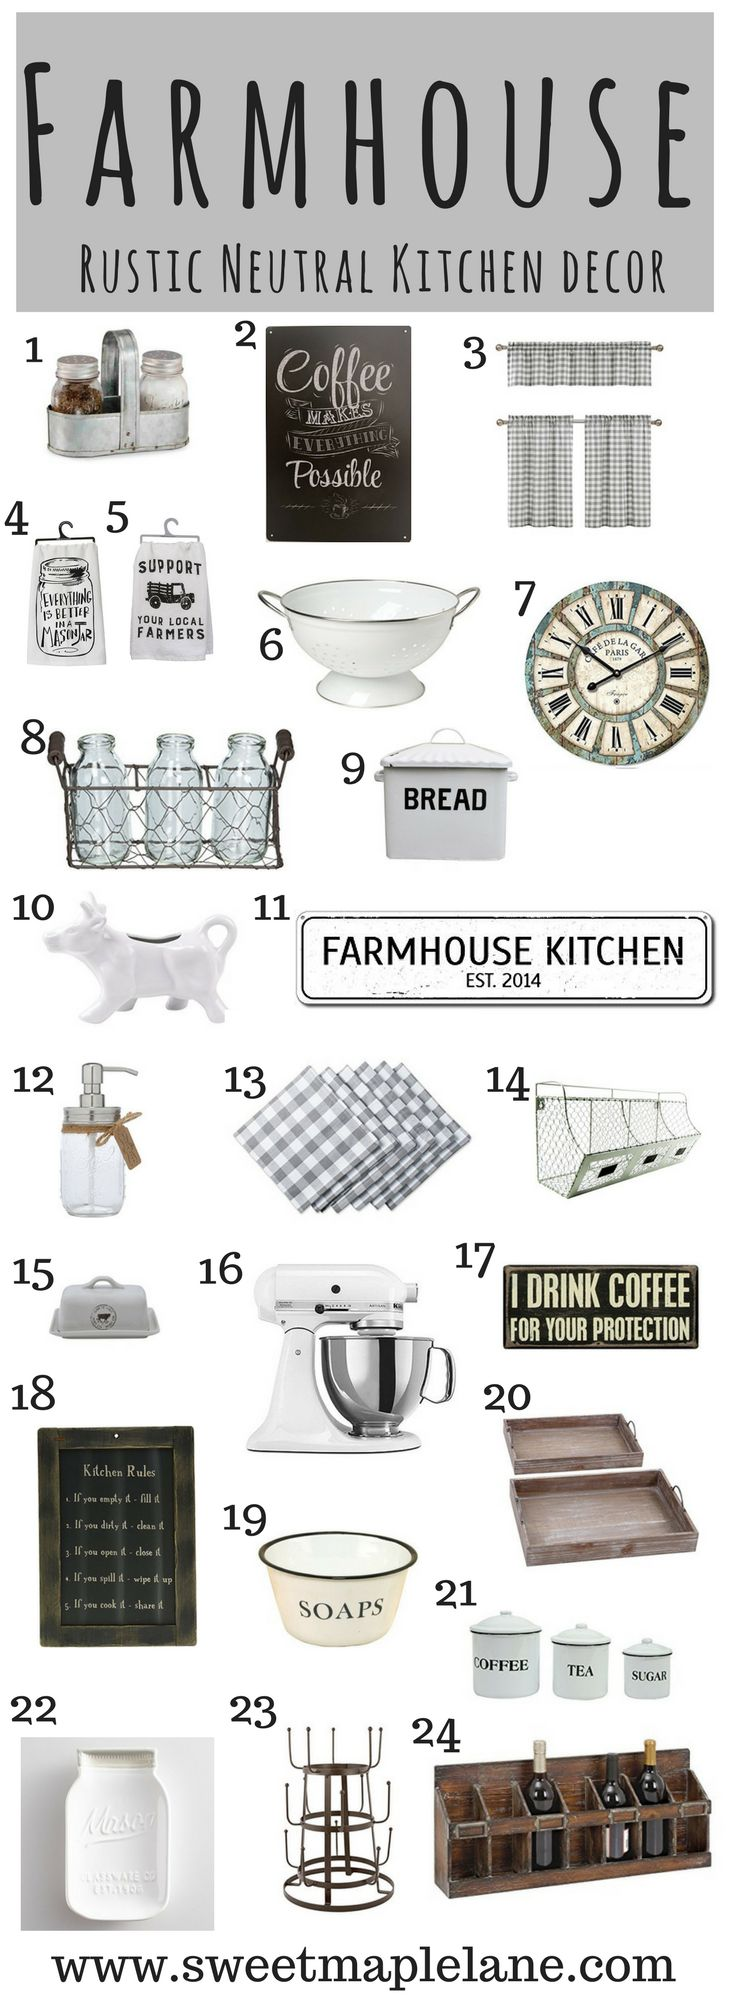 Rustic Neutral Farmhouse Kitchen Decor